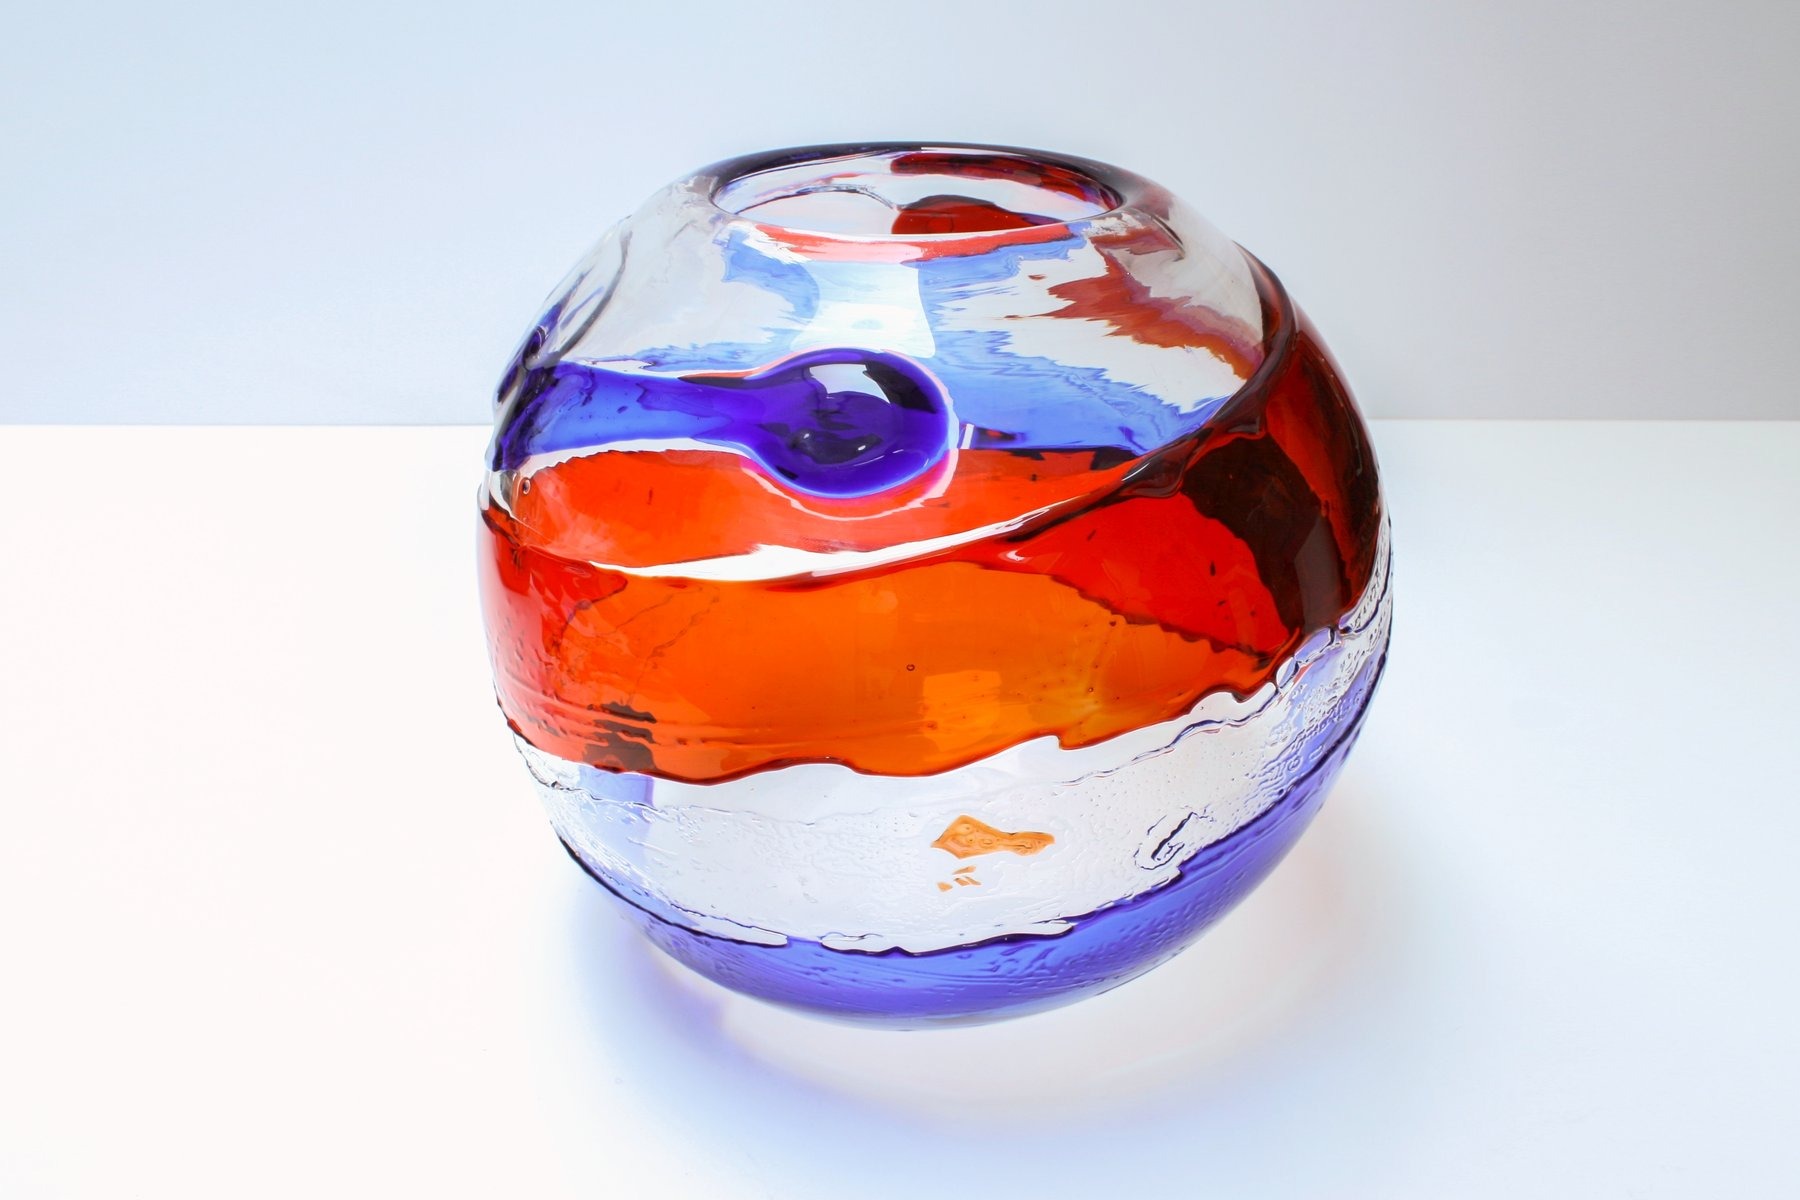 Mid century murano glass vase from atelier dogi for sale at pamono mid century murano glass vase from atelier dogi reviewsmspy